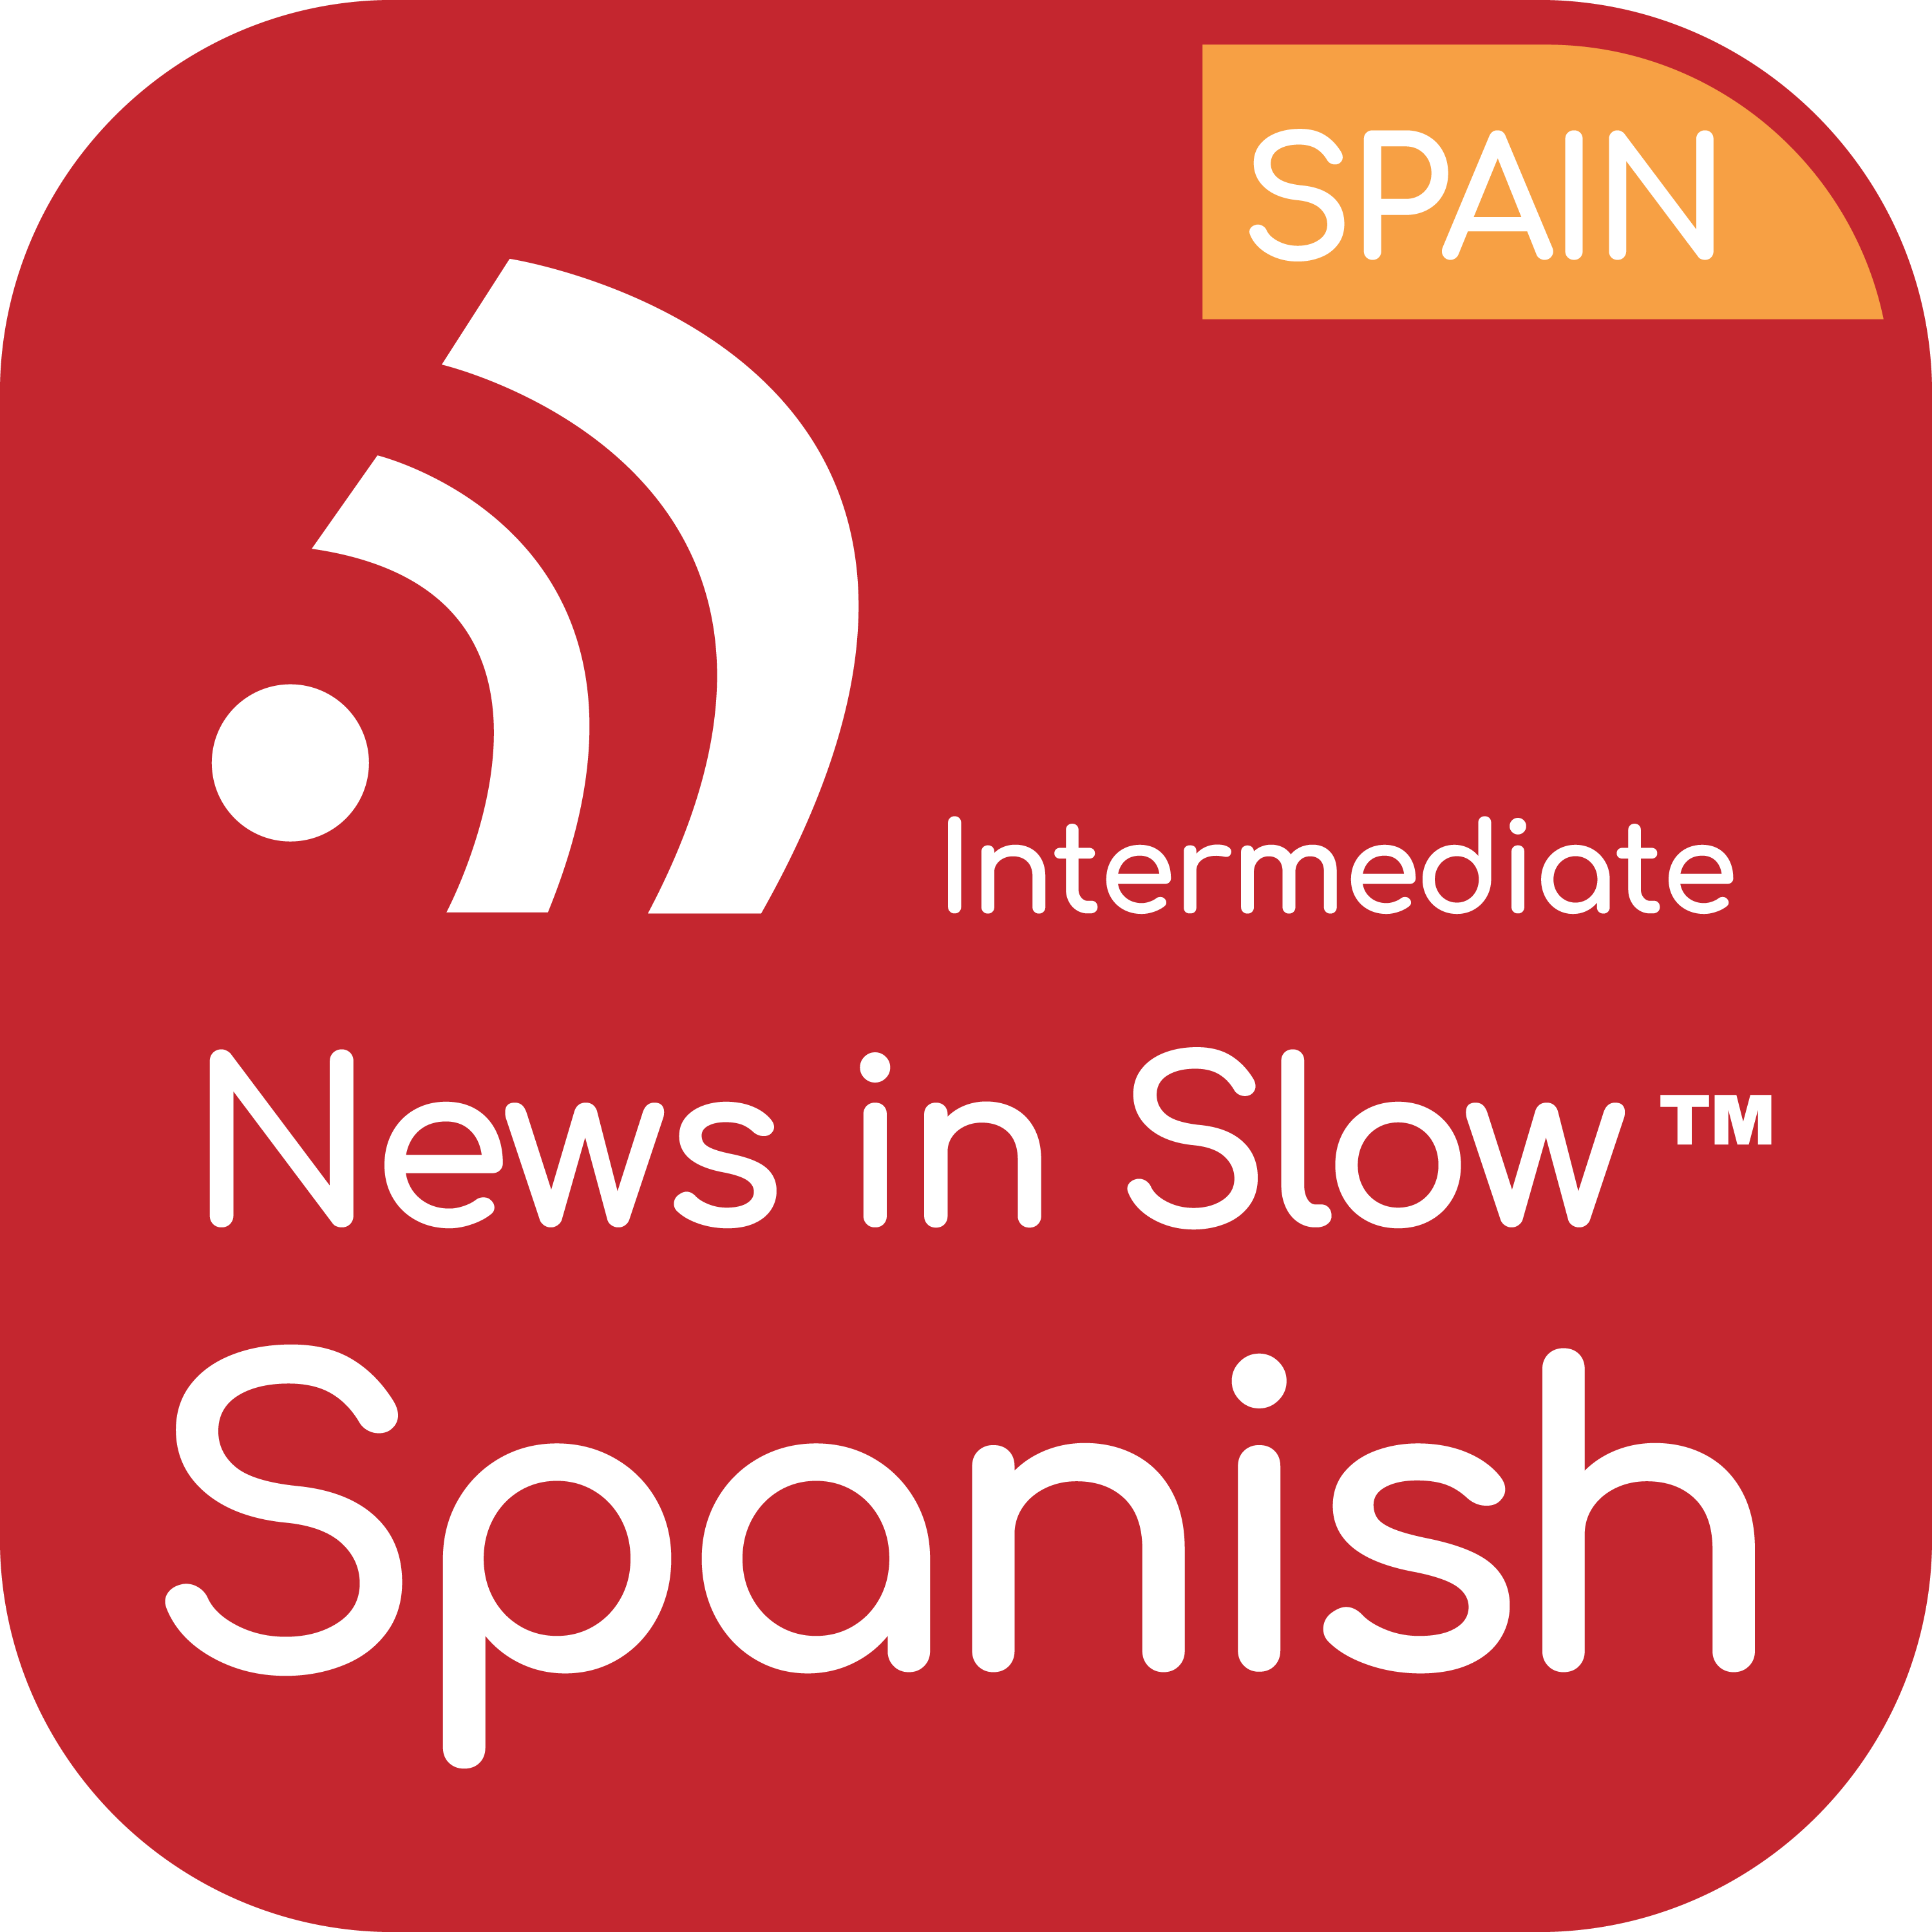 News in Slow Spanish - #566 - Learn Spanish through Current Events